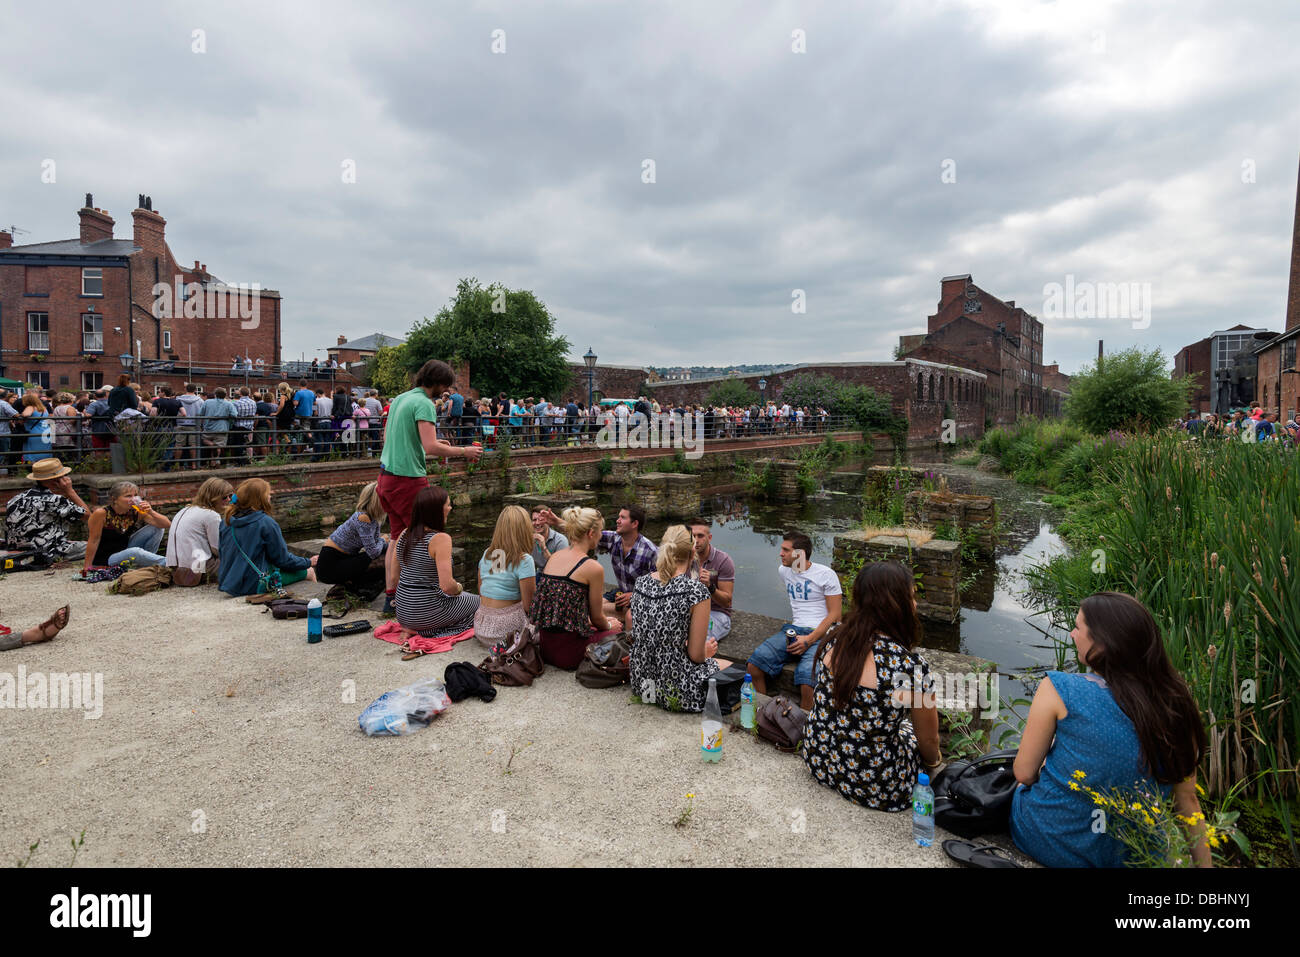 Crowds of people listening to bands in Kelham Island Sheffield South Yorkshire England at  Tramlines music festival Stock Photo